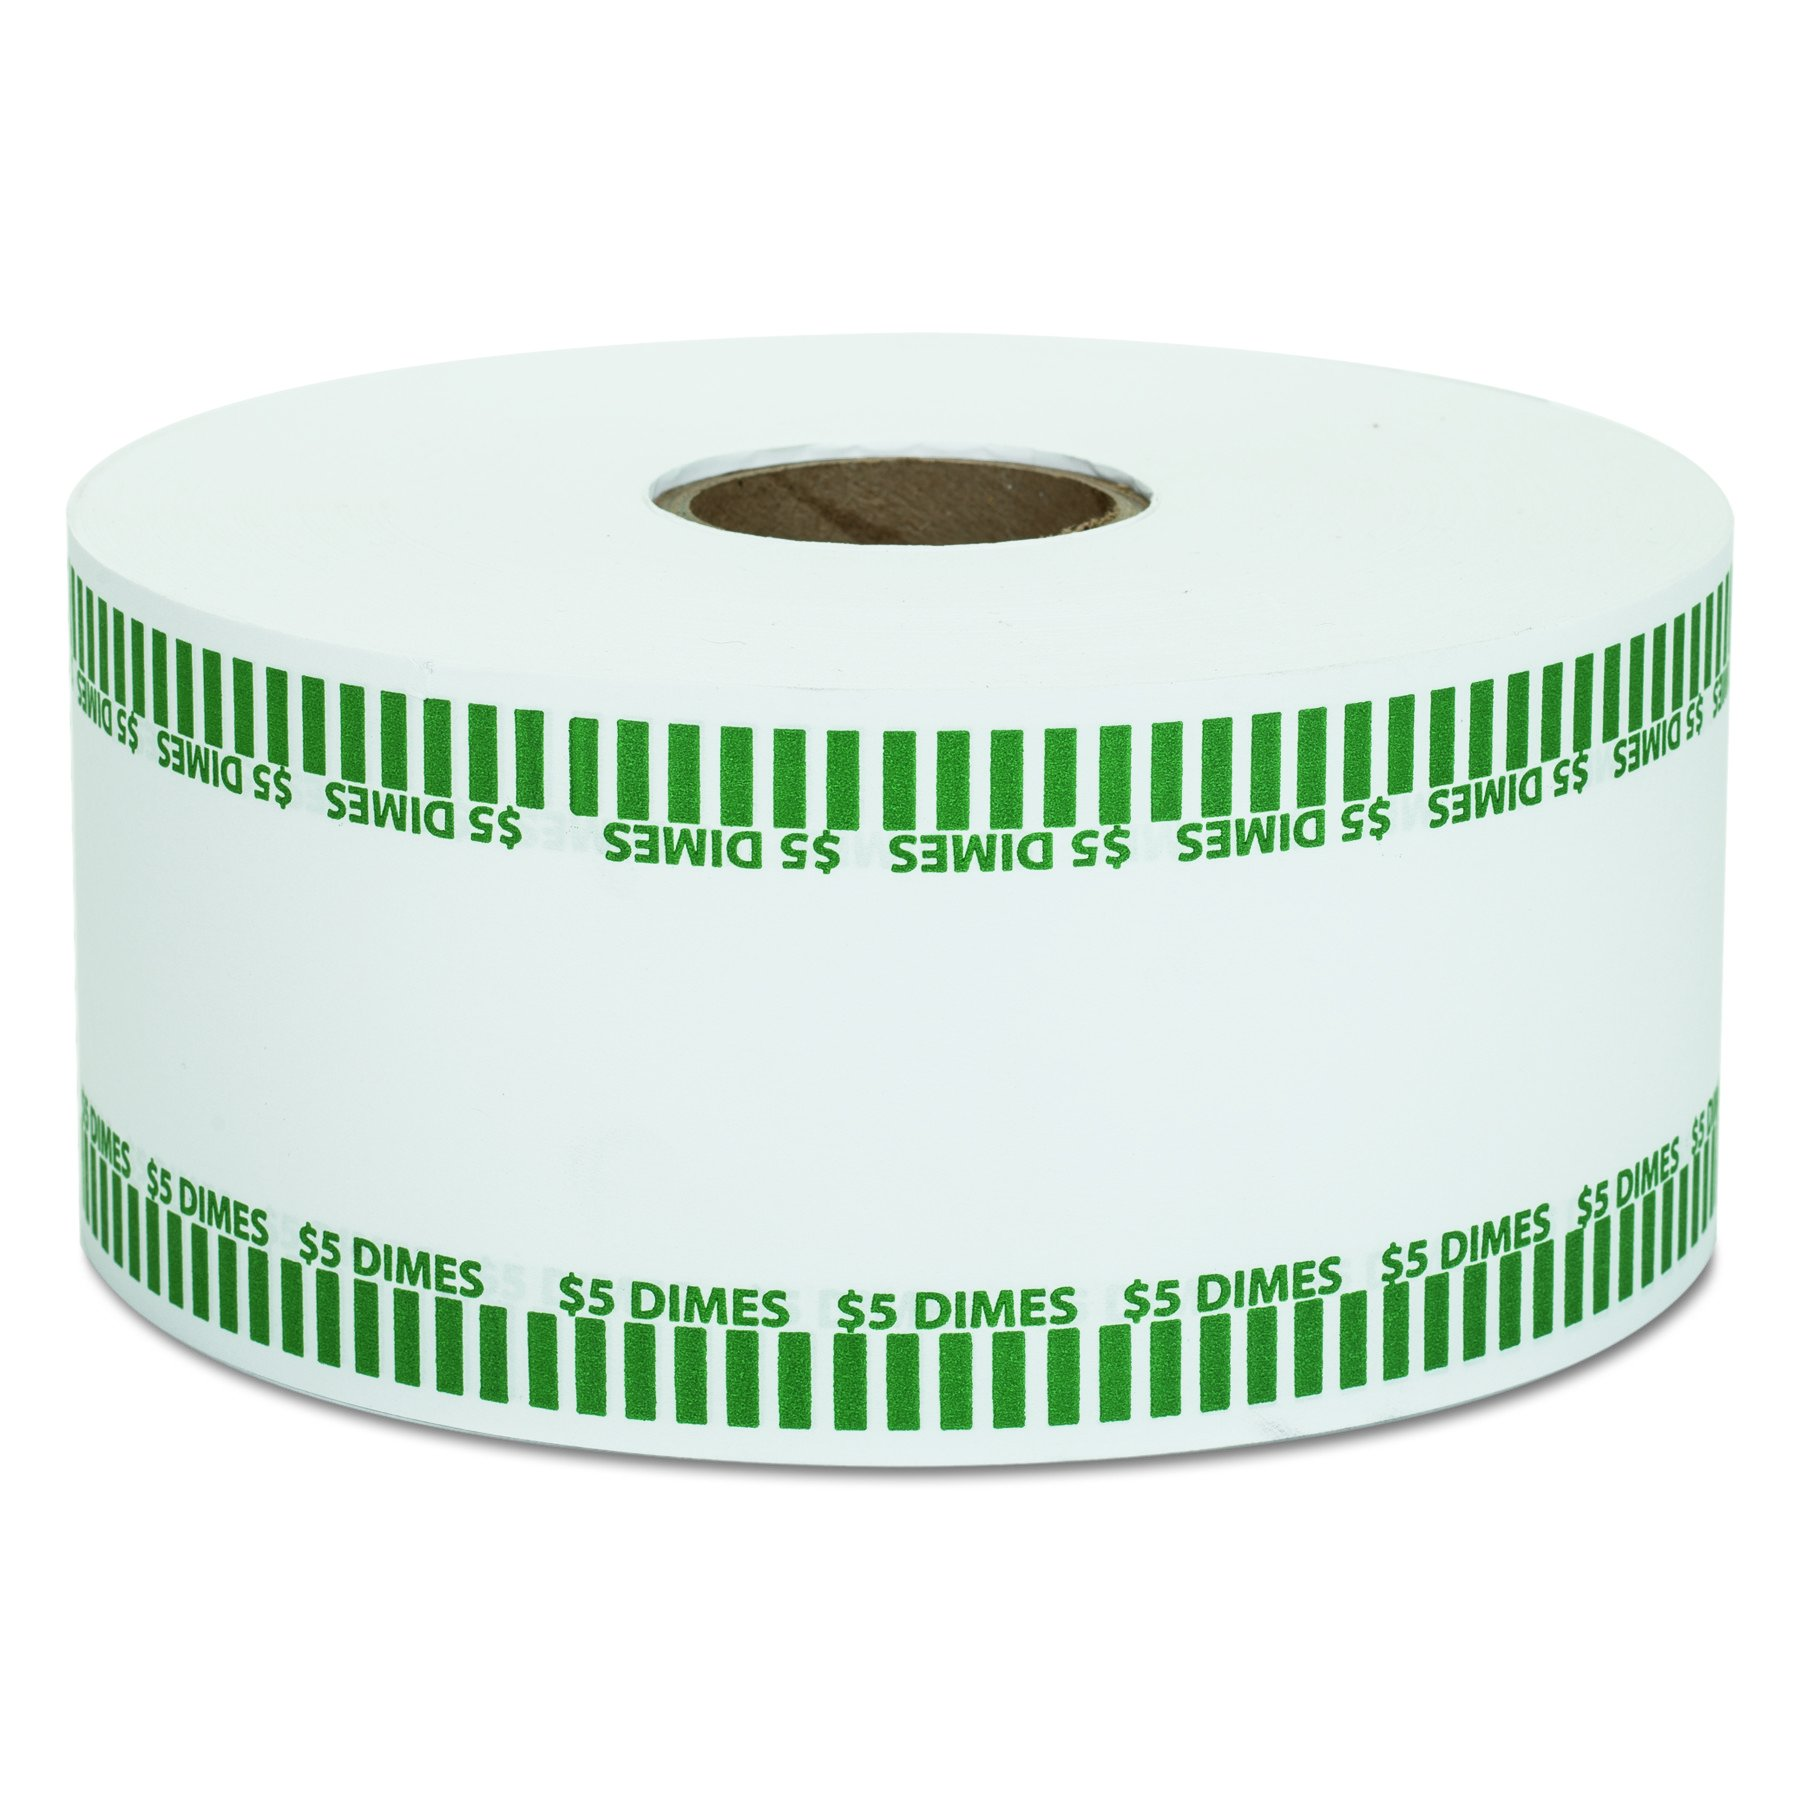 Coin-Tainer 50010 Automatic Coin Rolls, Dimes, 5, 1900 Wrappers per Roll by MMF Industries (Image #1)